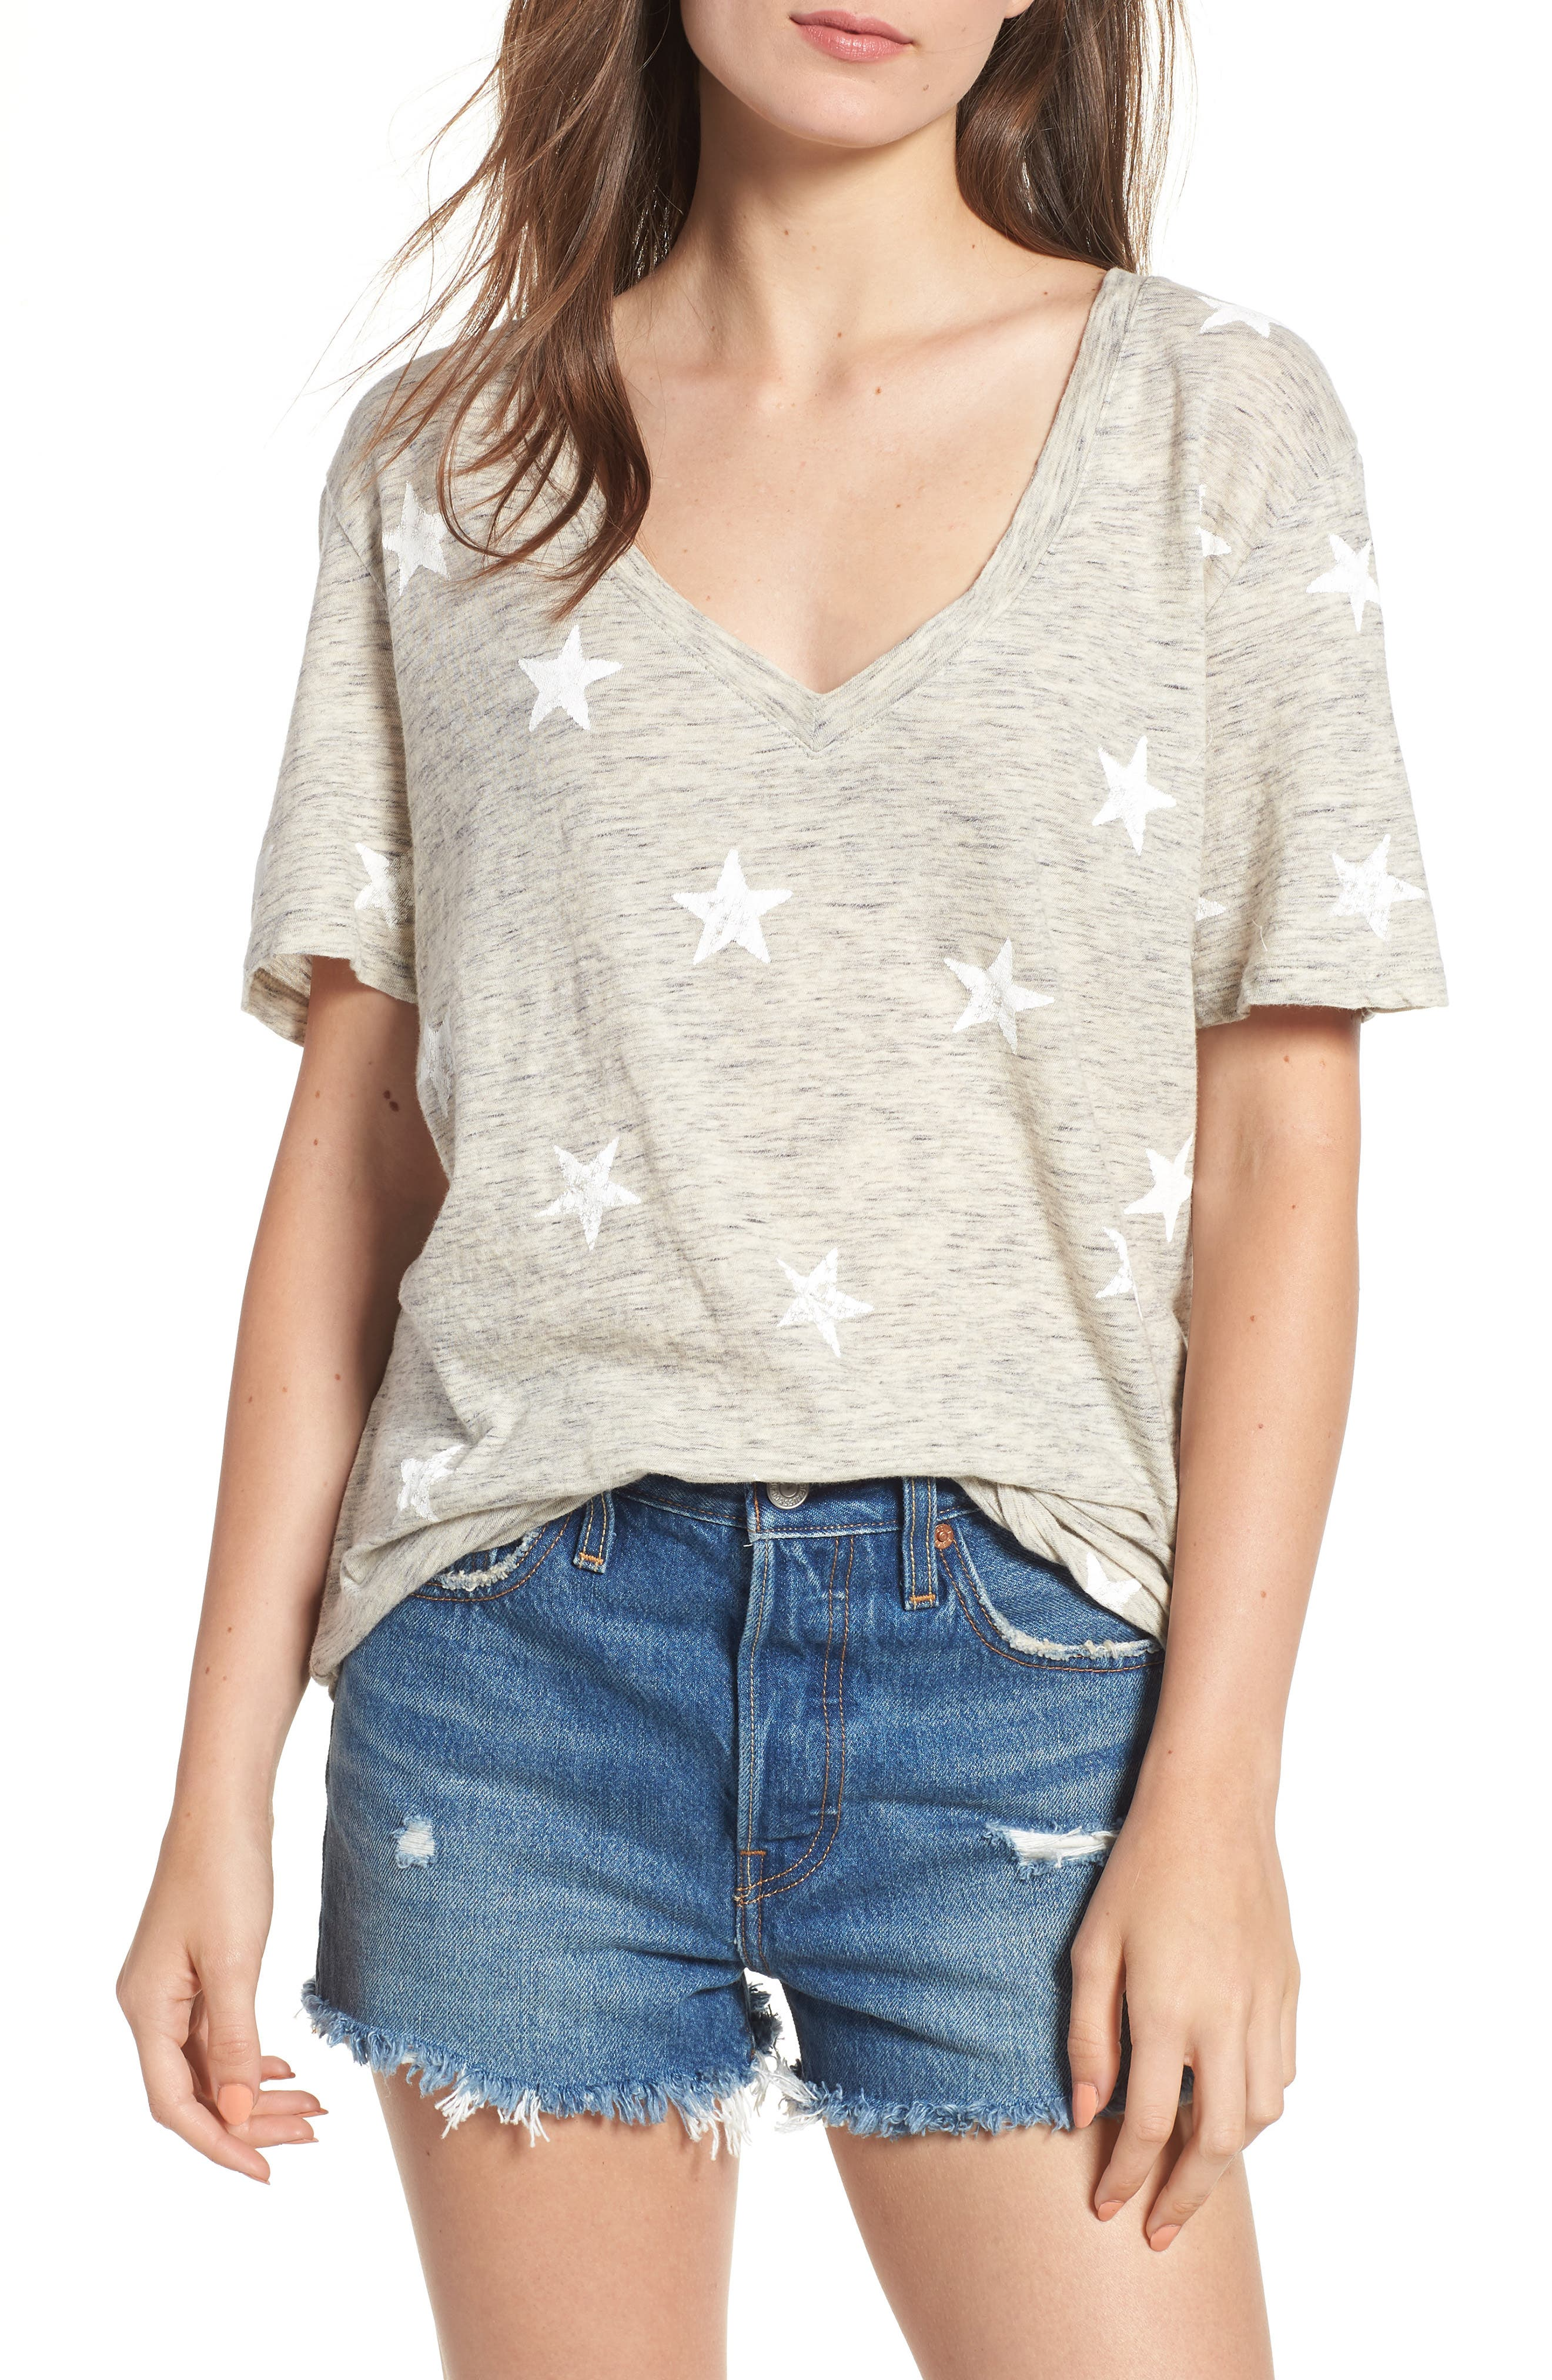 Star Tee,                         Main,                         color, Grey/ White